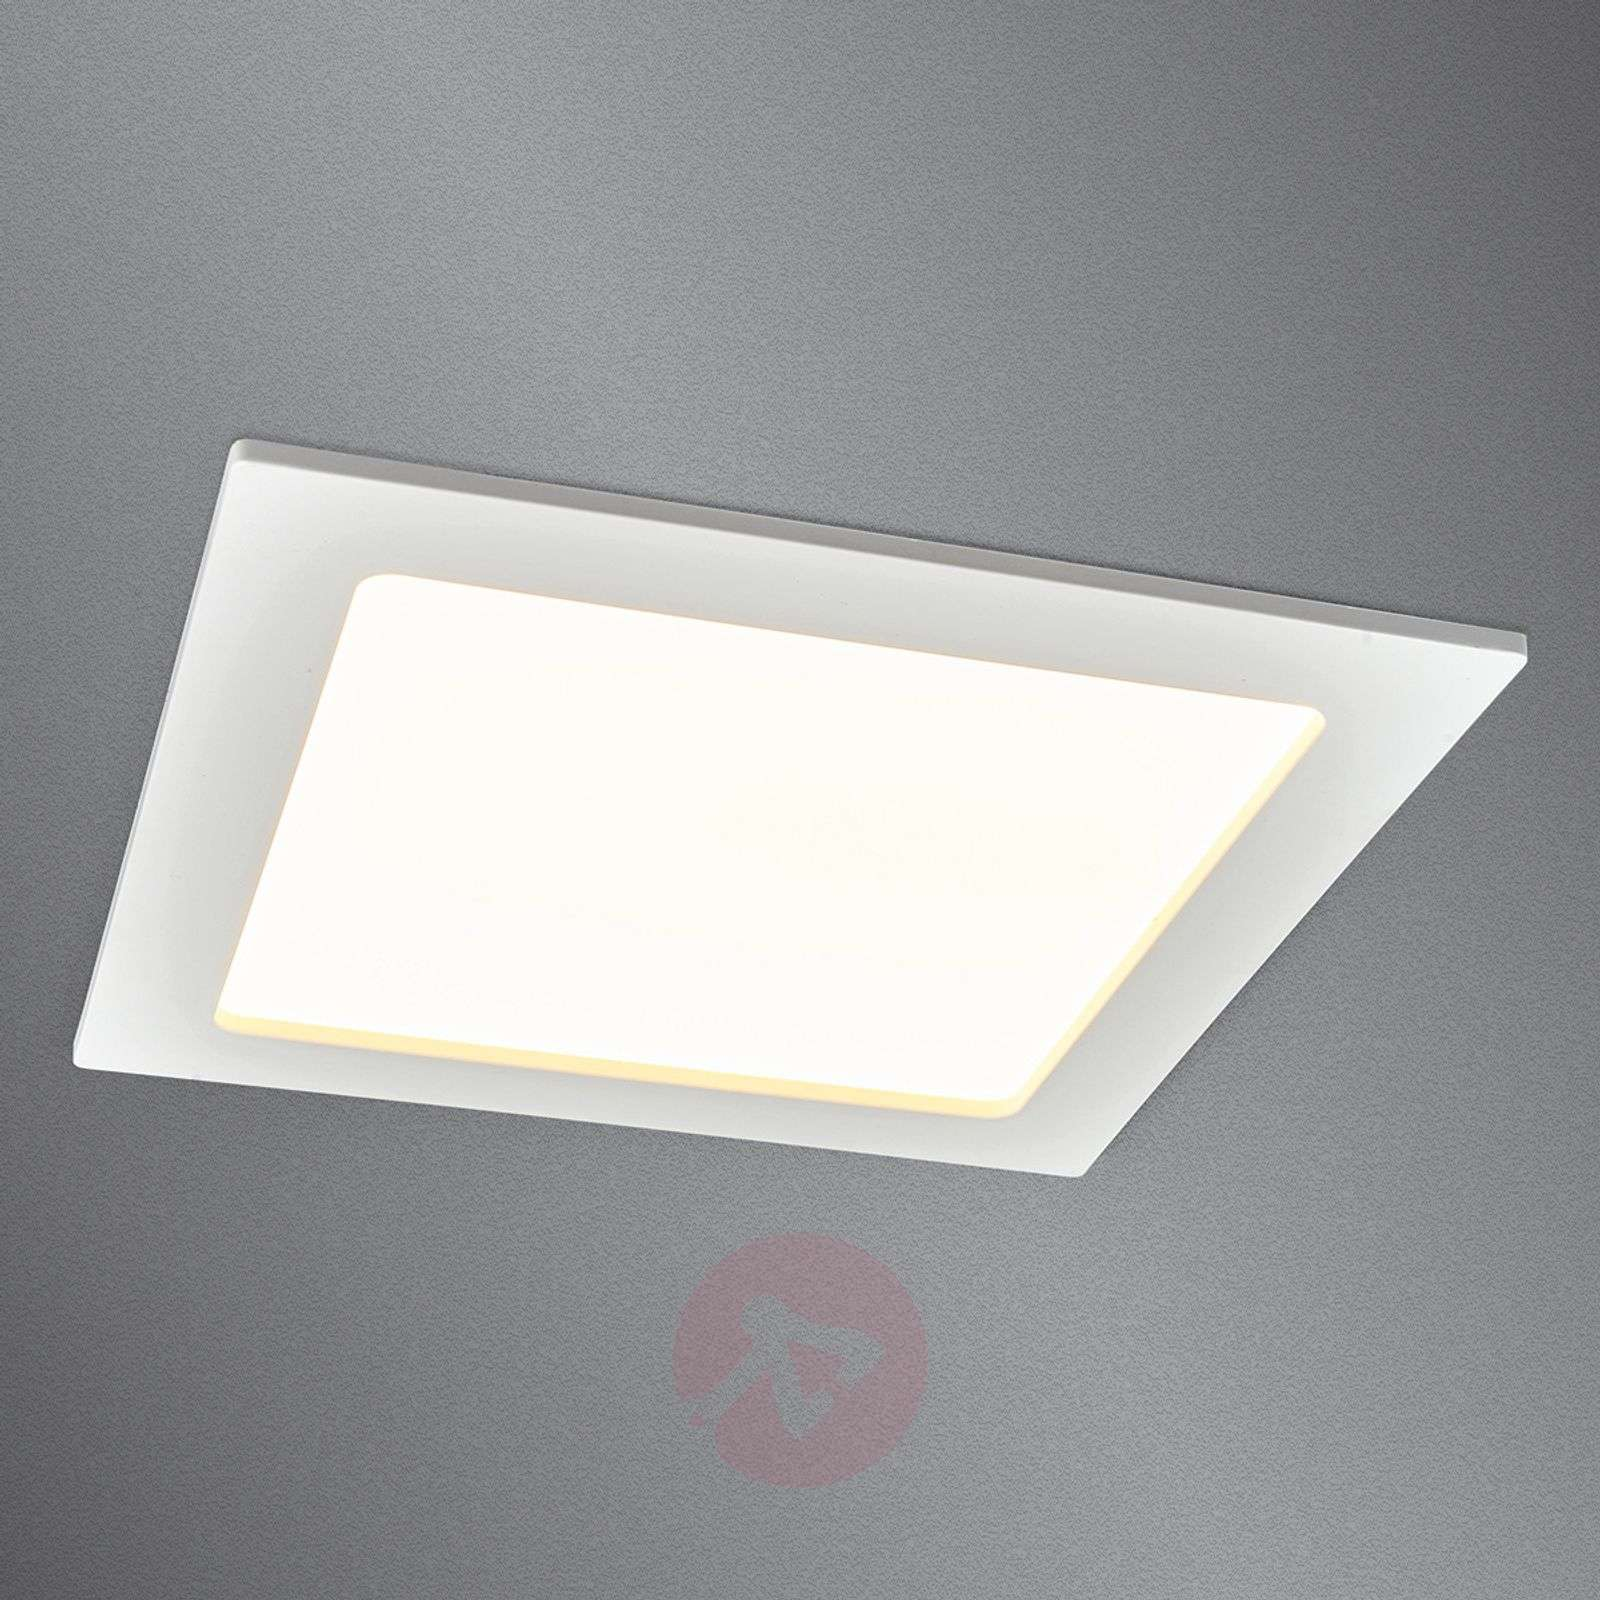 led ceiling light feva for bathrooms ip44 16 w lights. Black Bedroom Furniture Sets. Home Design Ideas